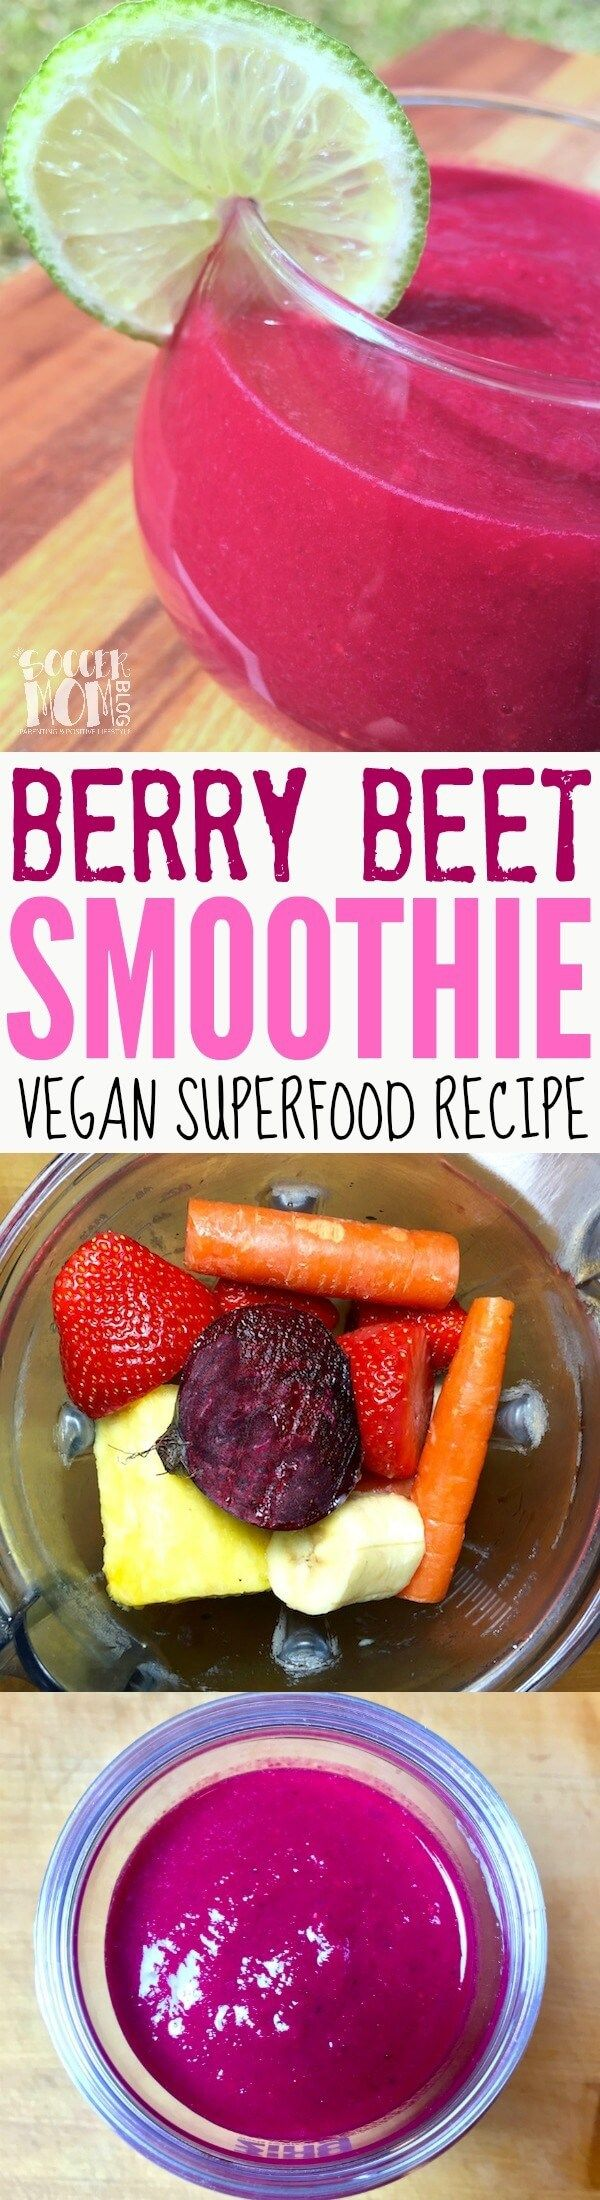 Packed with superfoods for a lasting energy boost - this healthy smoothie recipe looks beautiful and tastes amazing! Vegan, dairy free, kid-approved.